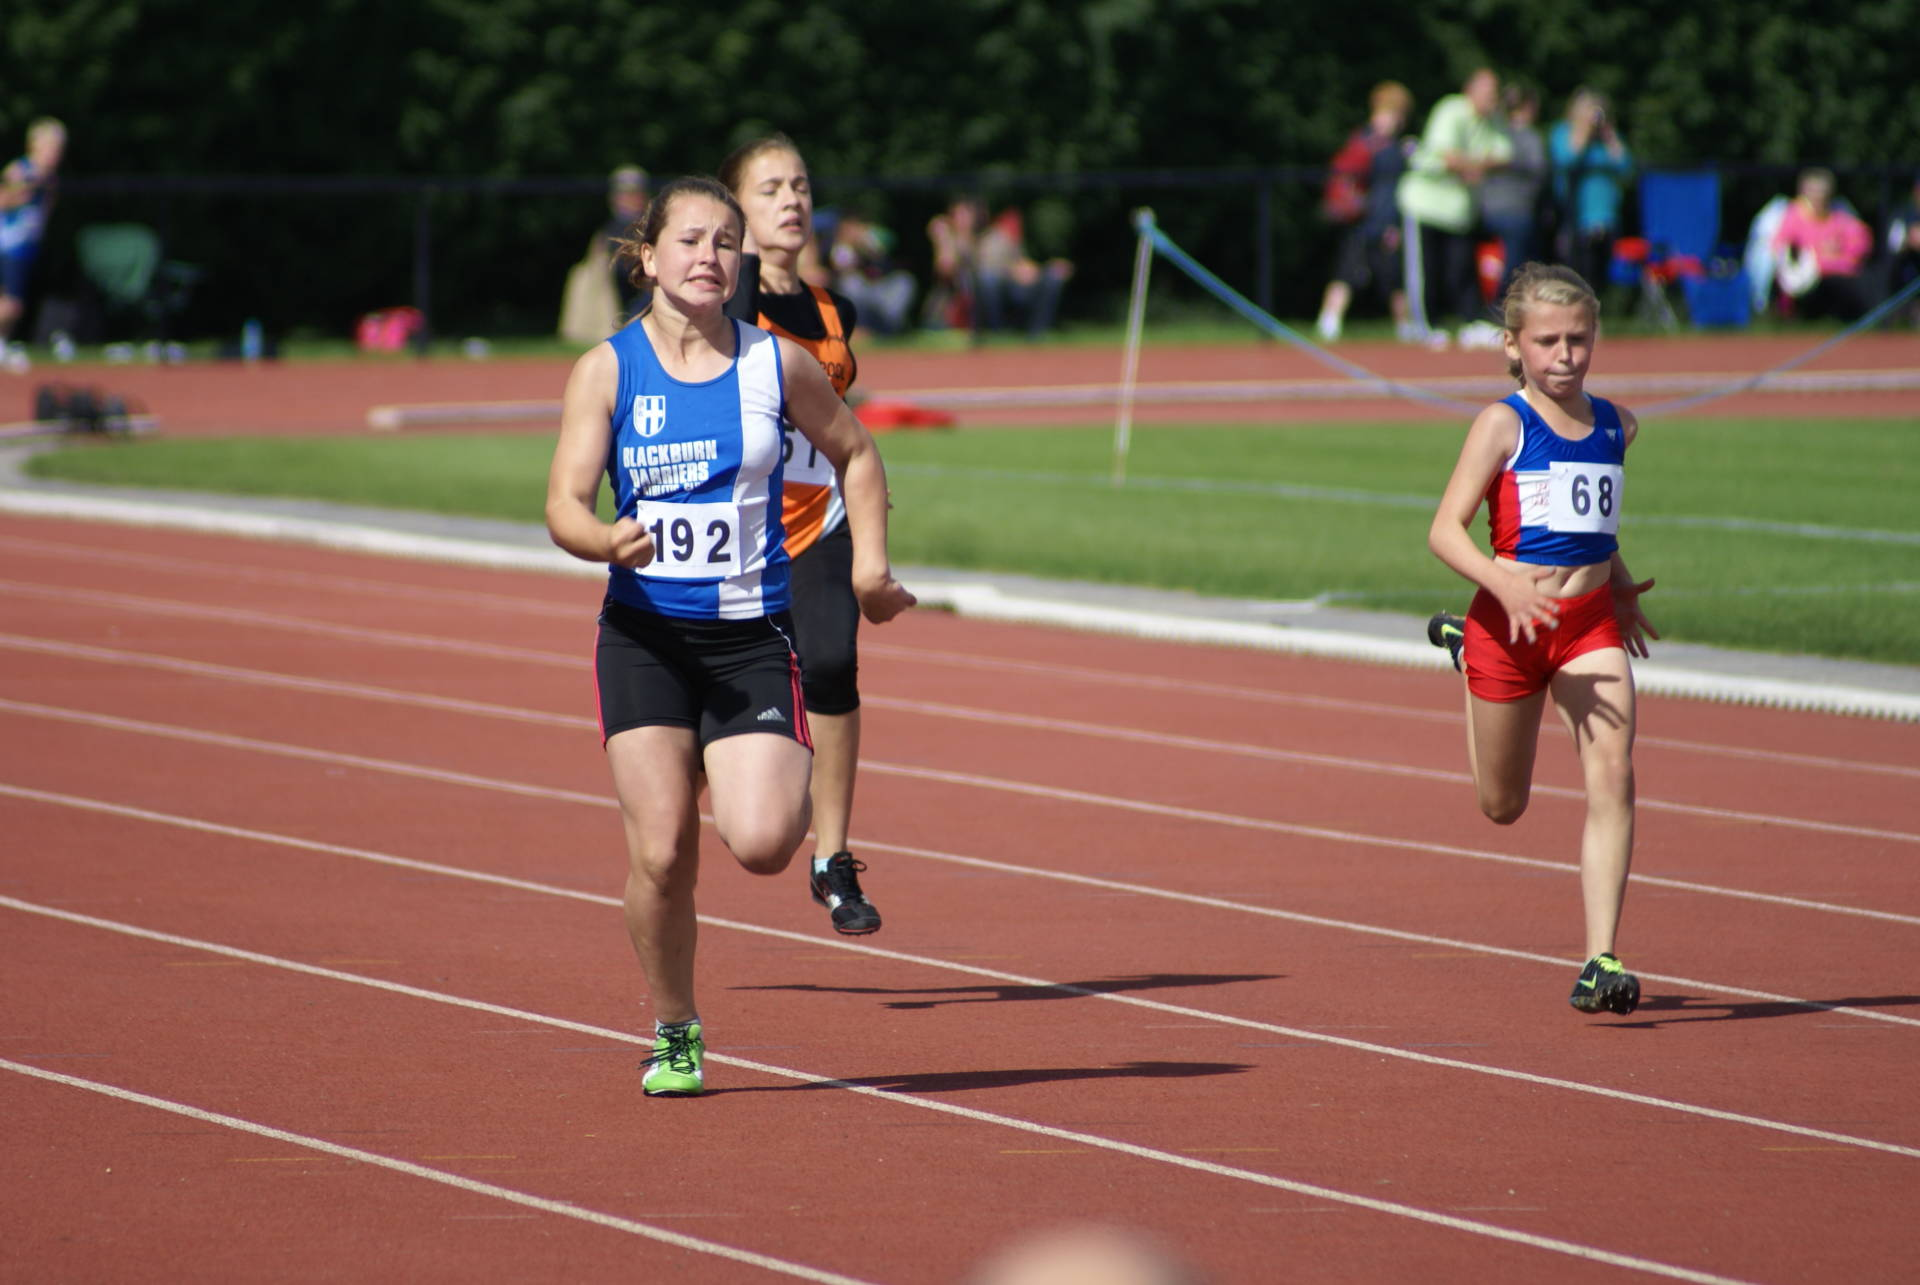 2013 Mid Lancs Medal Meeting at Wigan……and another Club Record for U13 Eloise Littlefair